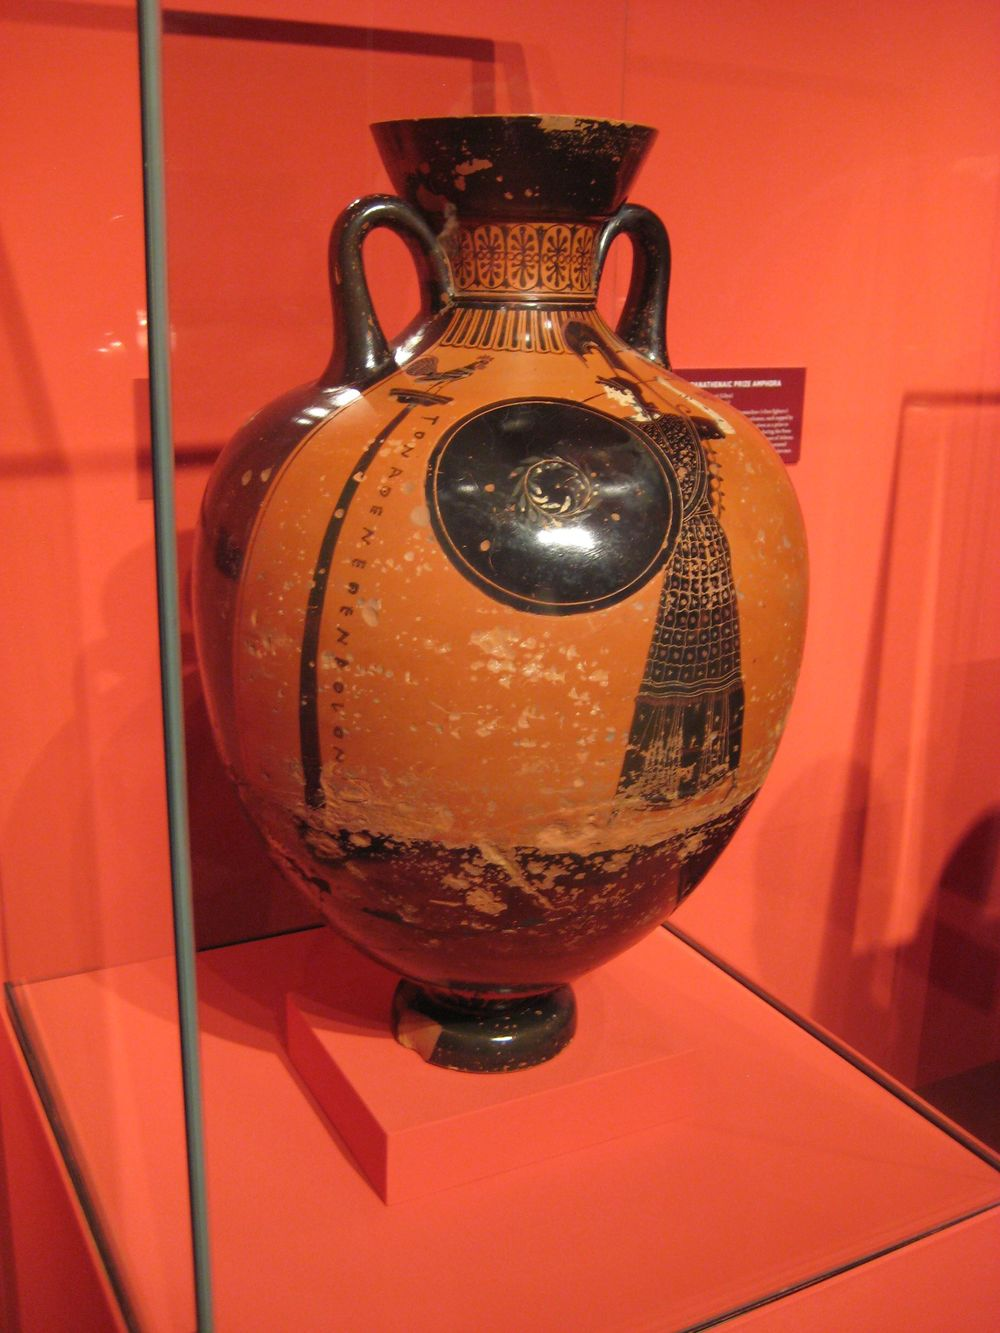 A photo I took of one of the Greek Amphora from the Pergamon Museum in Berlin